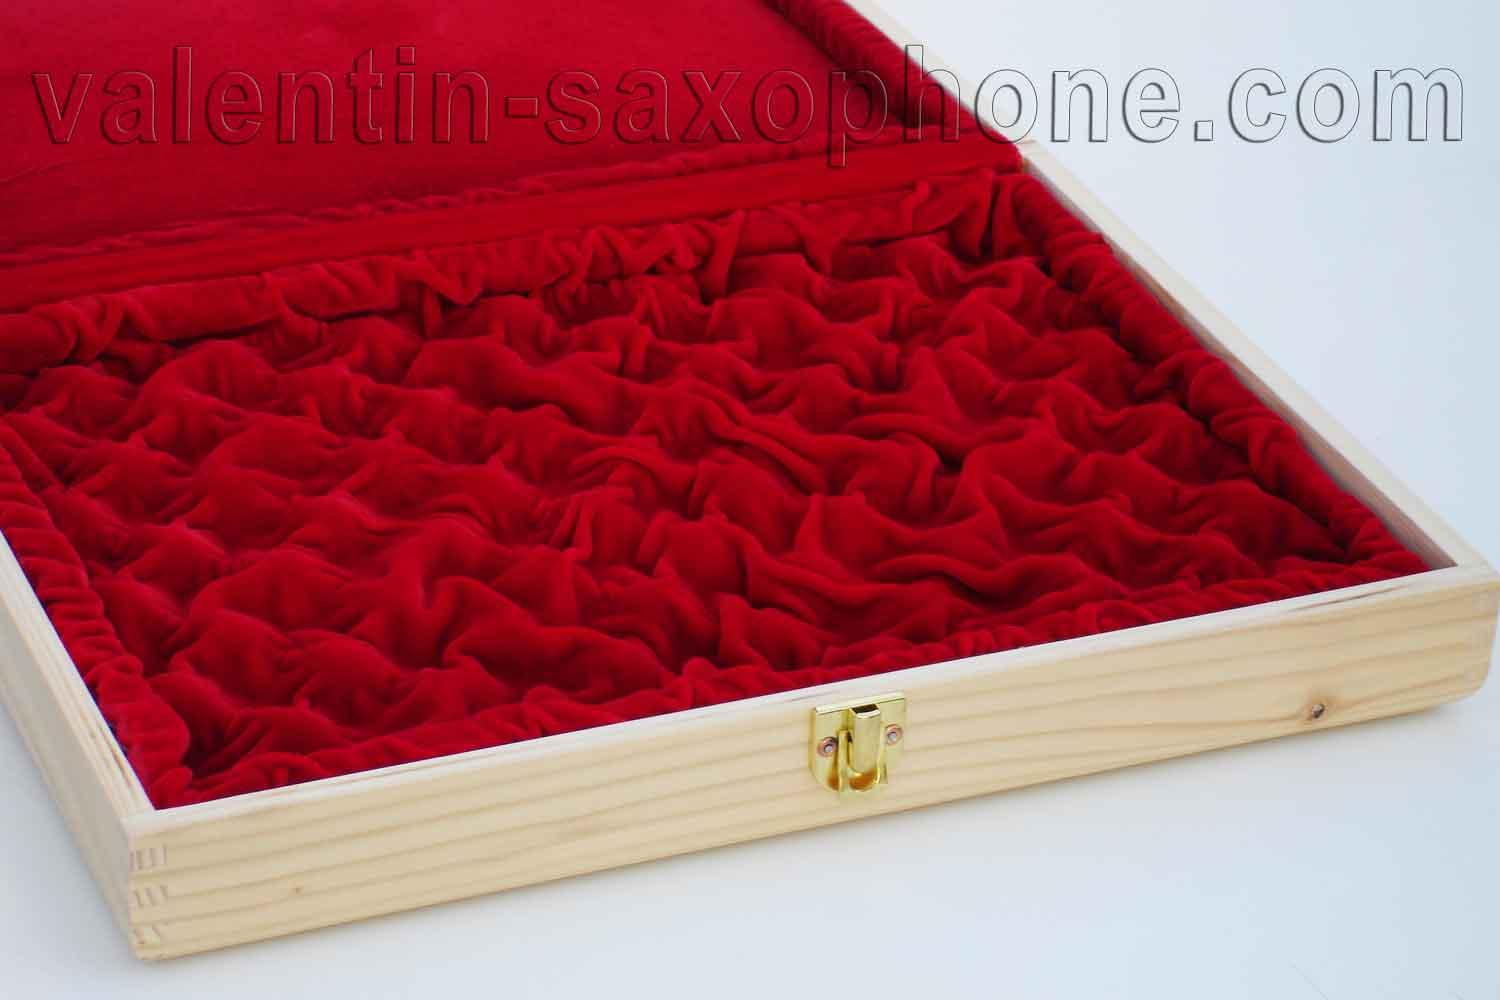 Valentin cases : A luxurious extremely soft red velvet completes the internal arrangement.